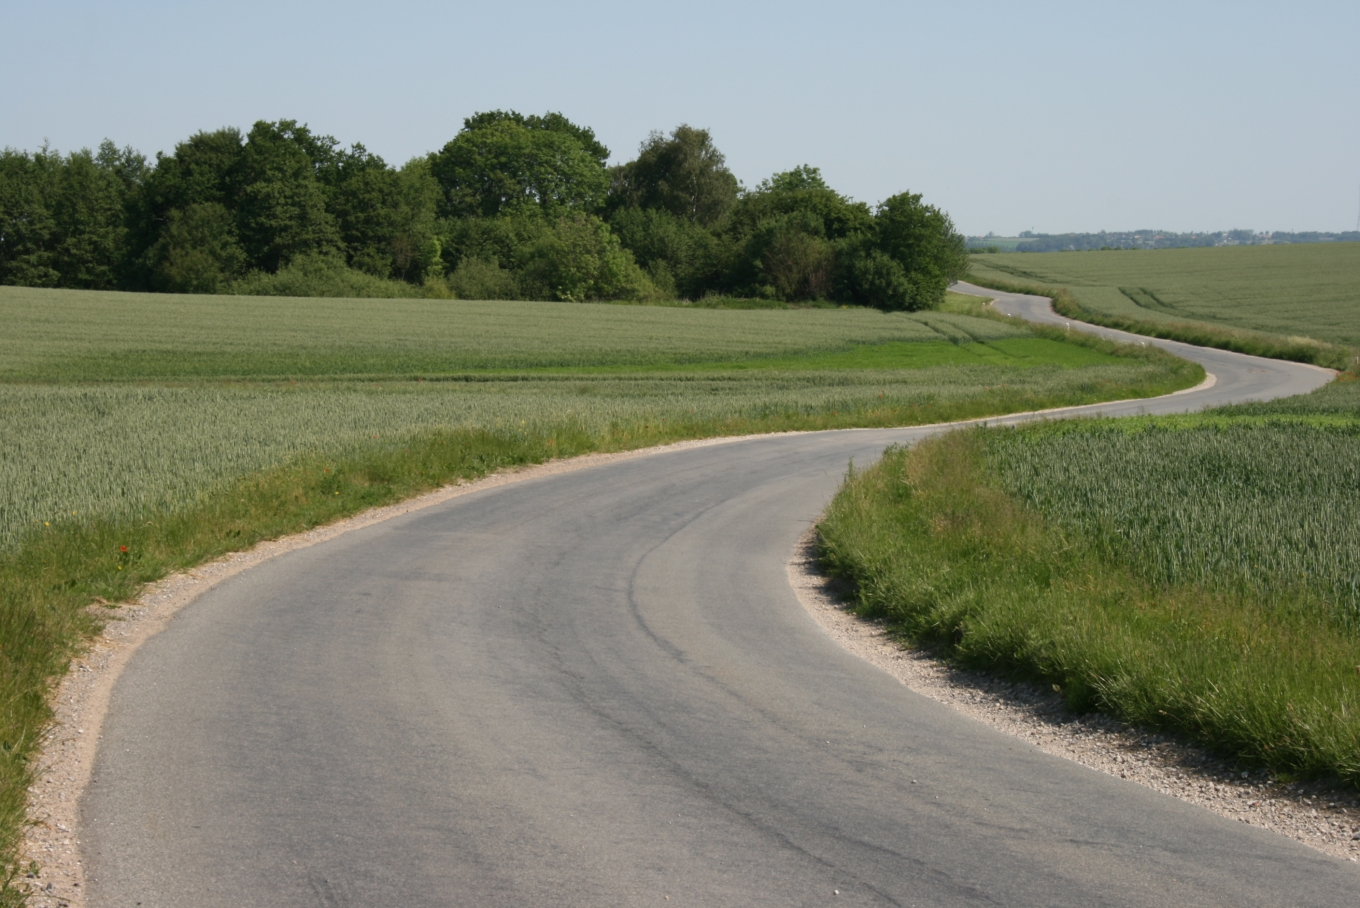 Photo of winding country road: Sten Porse, obtained from WikiMedia Commons under the terms of  Creative Commons Share-Alike 3.0 Unported license